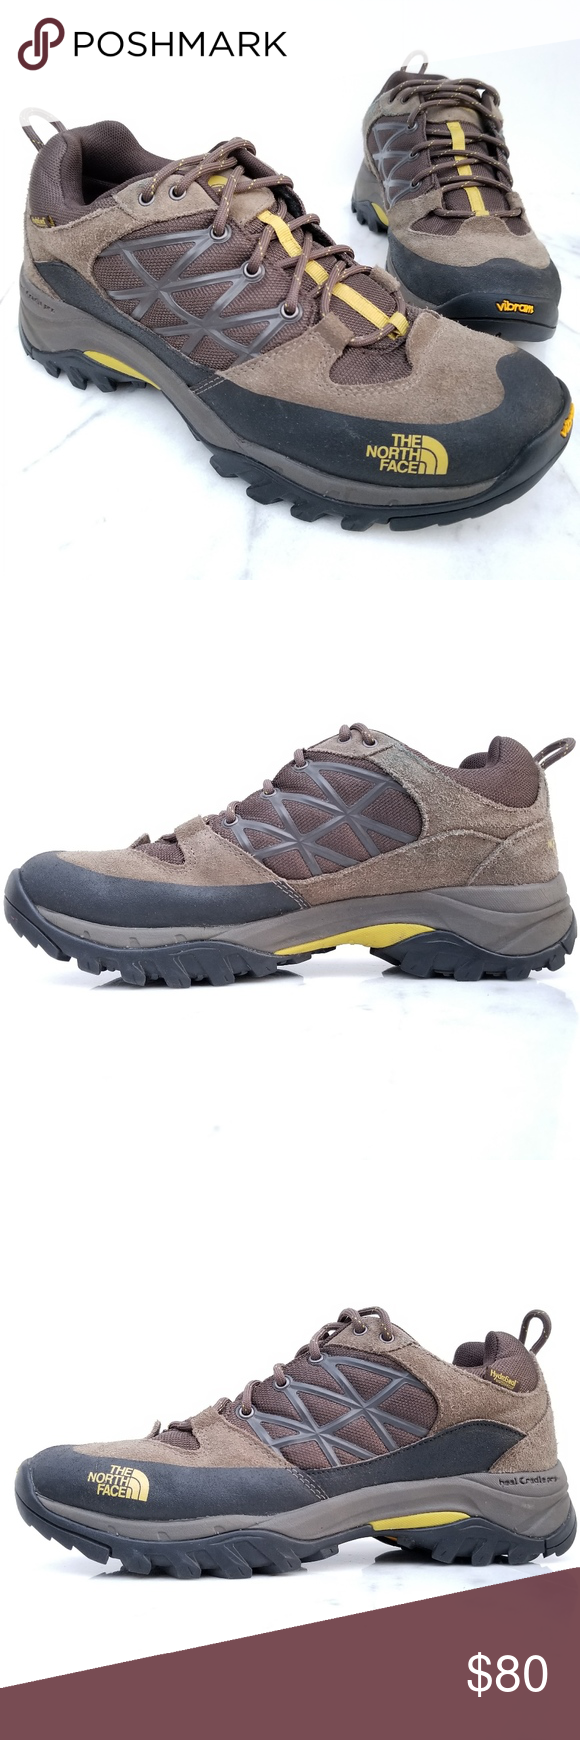 459a304d2a THE NORTH FACE Men s Storm Hiking Shoes Waterproof THE NORTH FACE Men s  Storm Low Top Hiking. Visit. February 2019